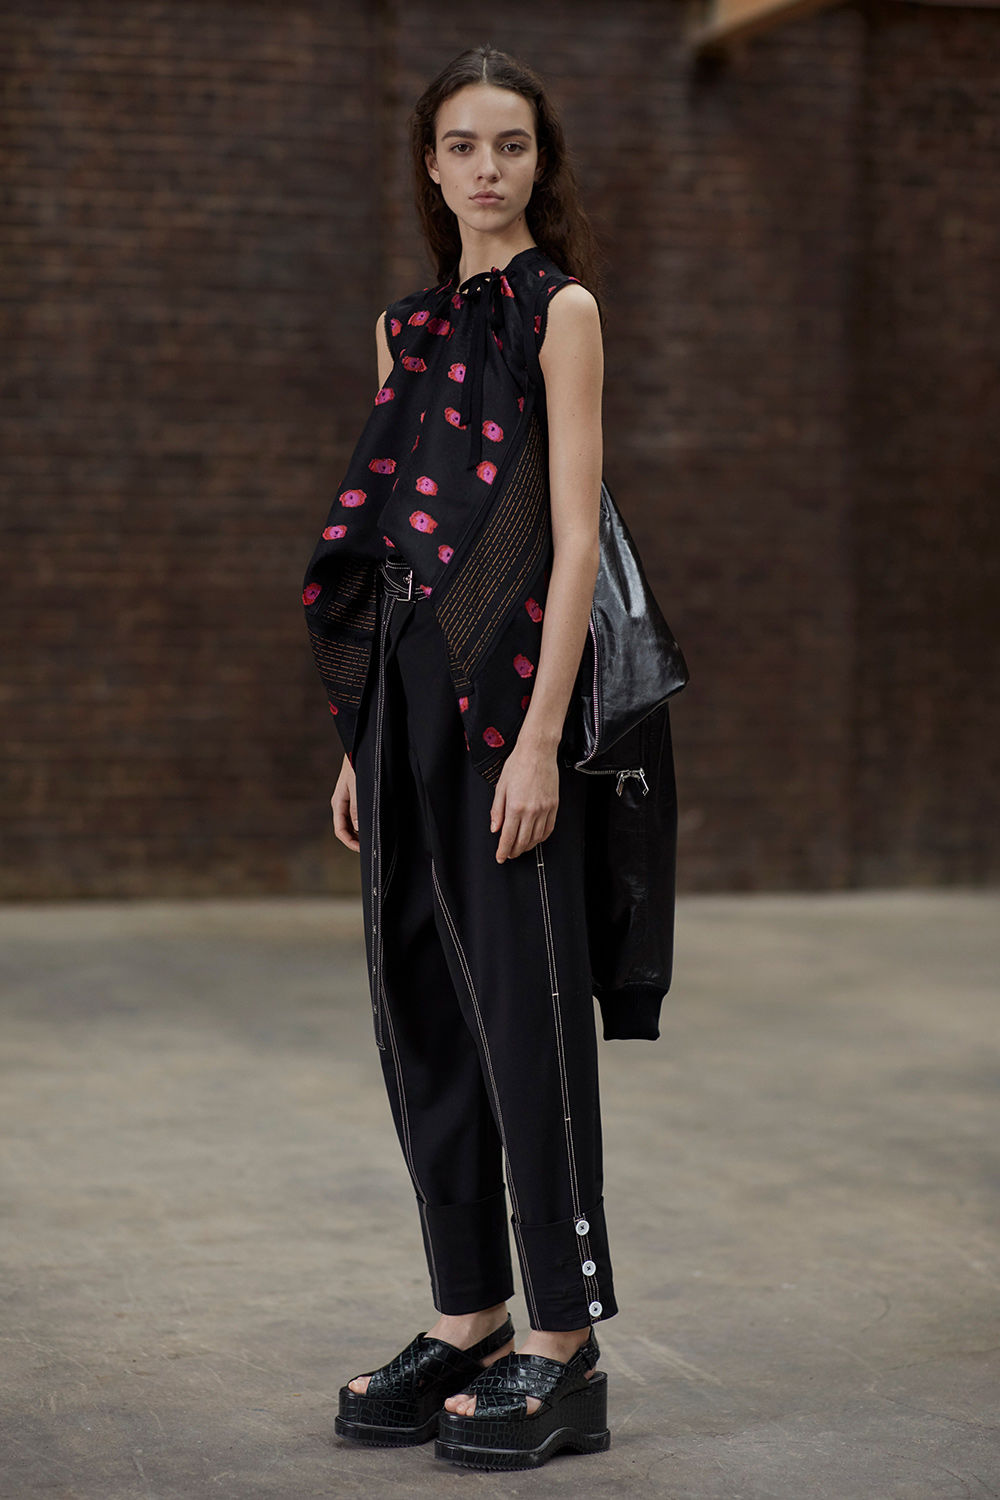 proenza schouler fall 2017 lookbook look 2